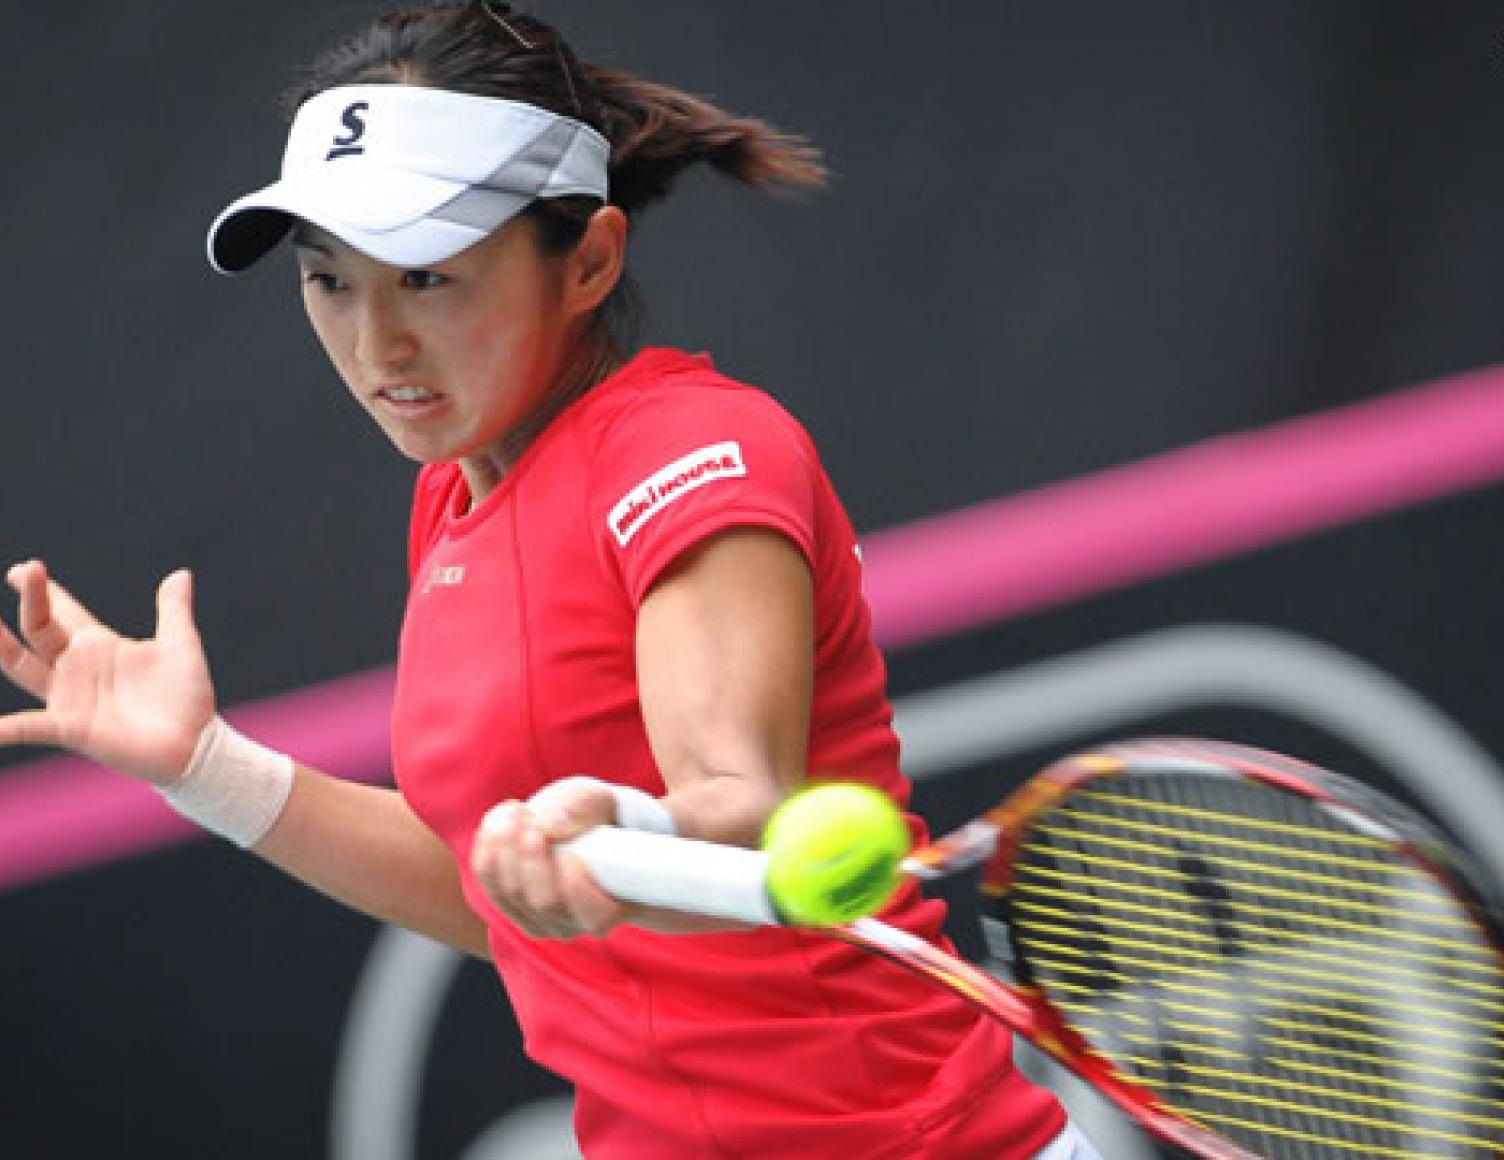 Hd Misaki Doi Fantastic Short Desktop Mobile Background Wallpaper